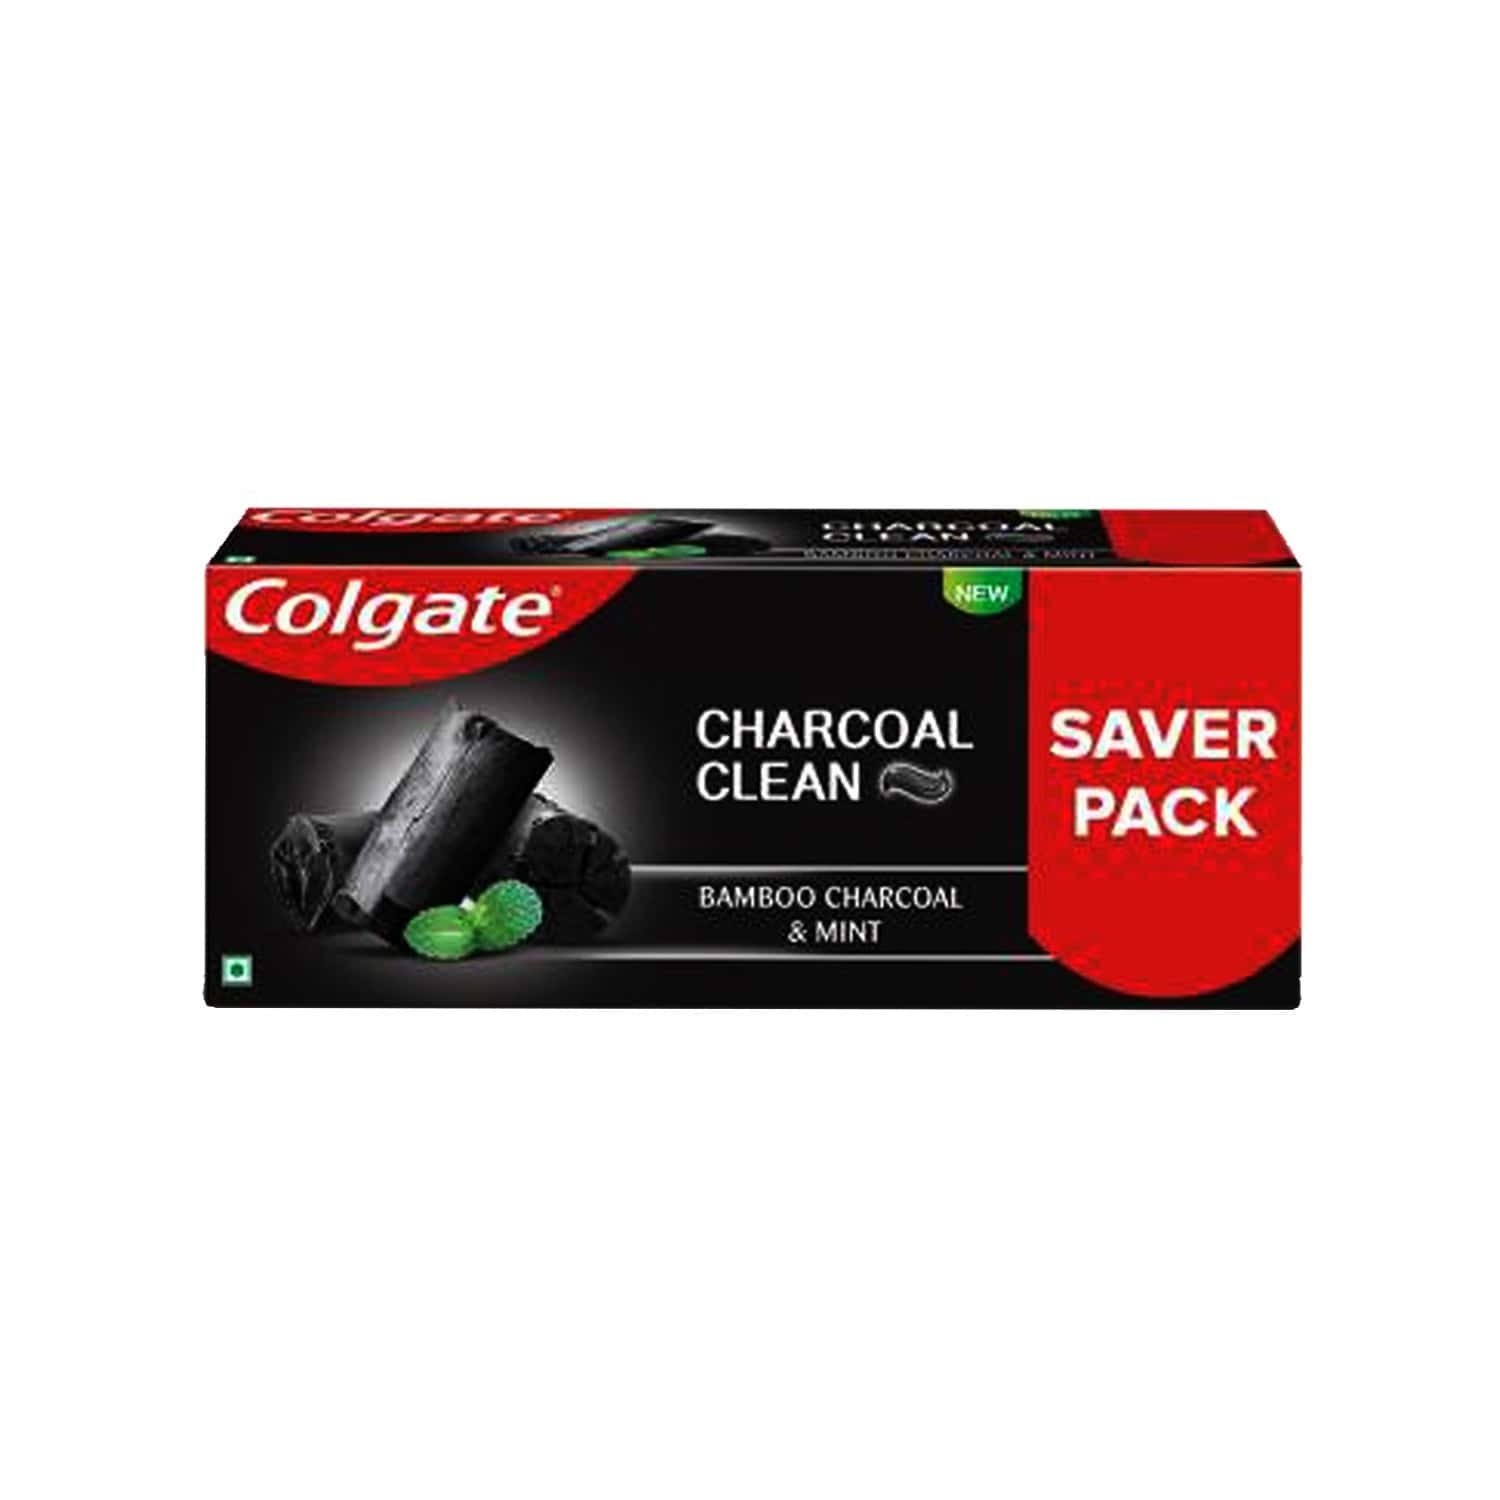 Colgate Charcoal Clean Toothpaste, Bamboo Charcoal And Mint (black Gel) 240g Saver Pack